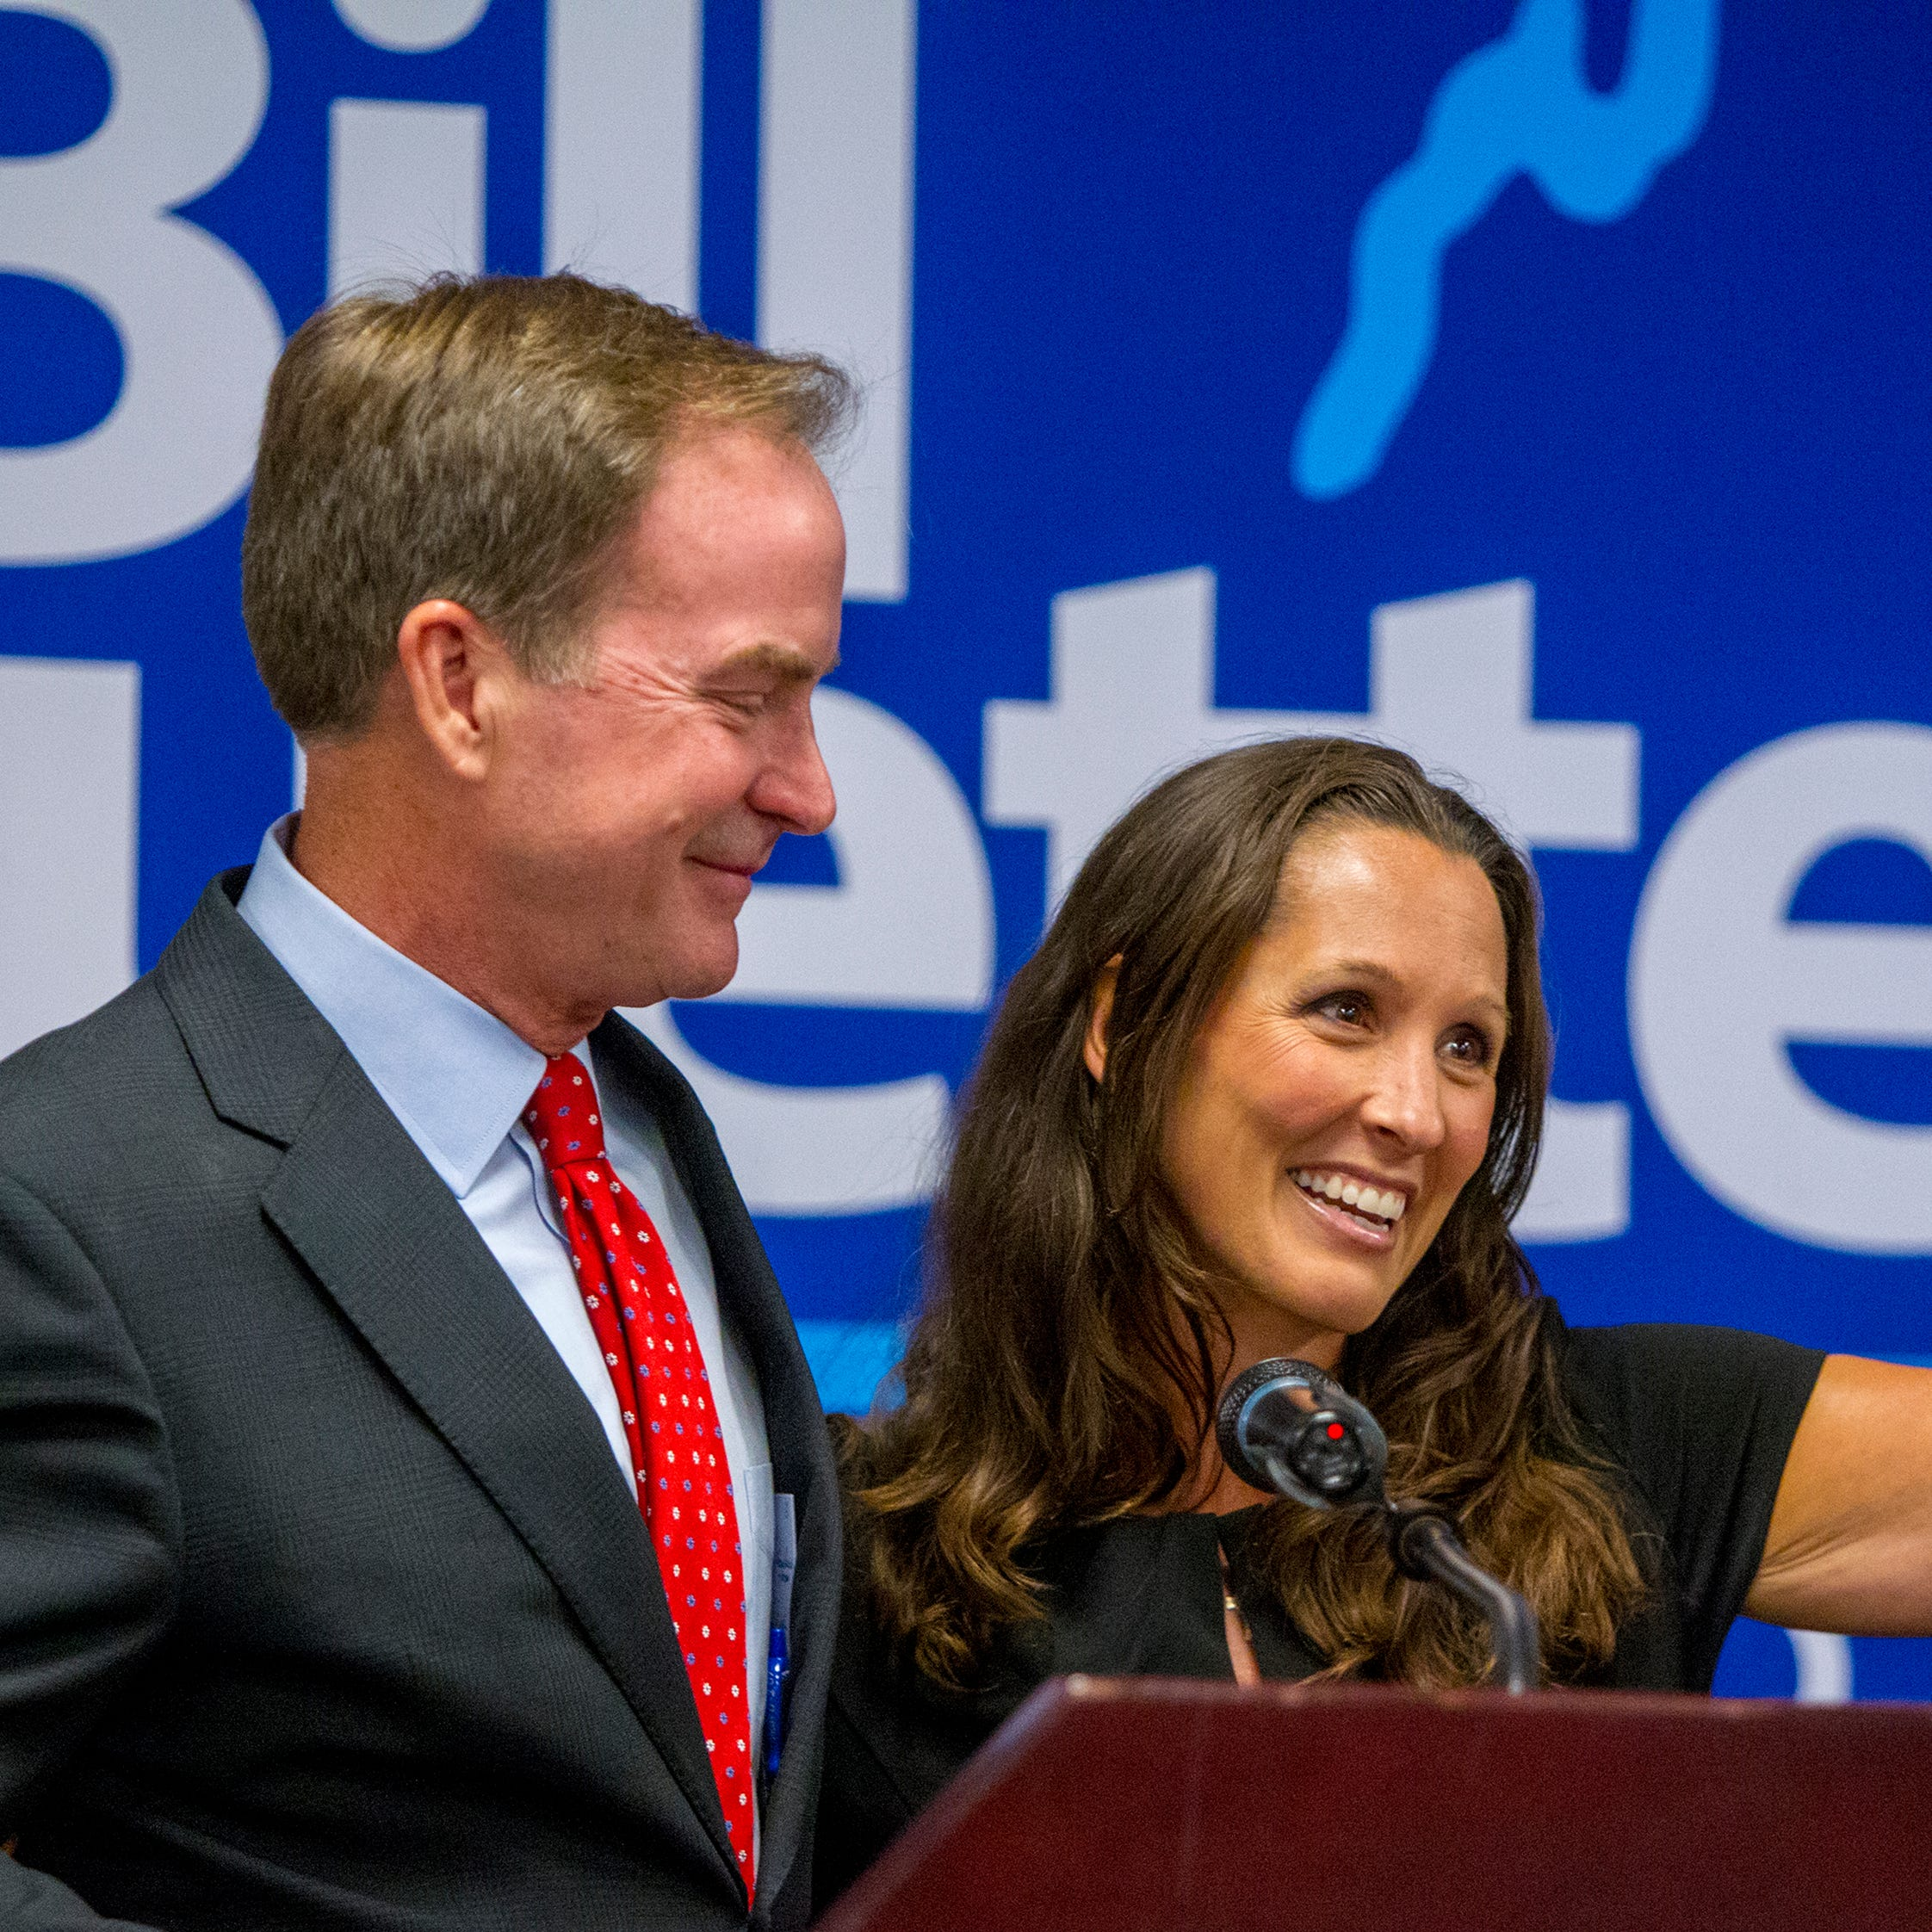 GOP governor nominee Bill Schuette names Lisa Lyons as running mate